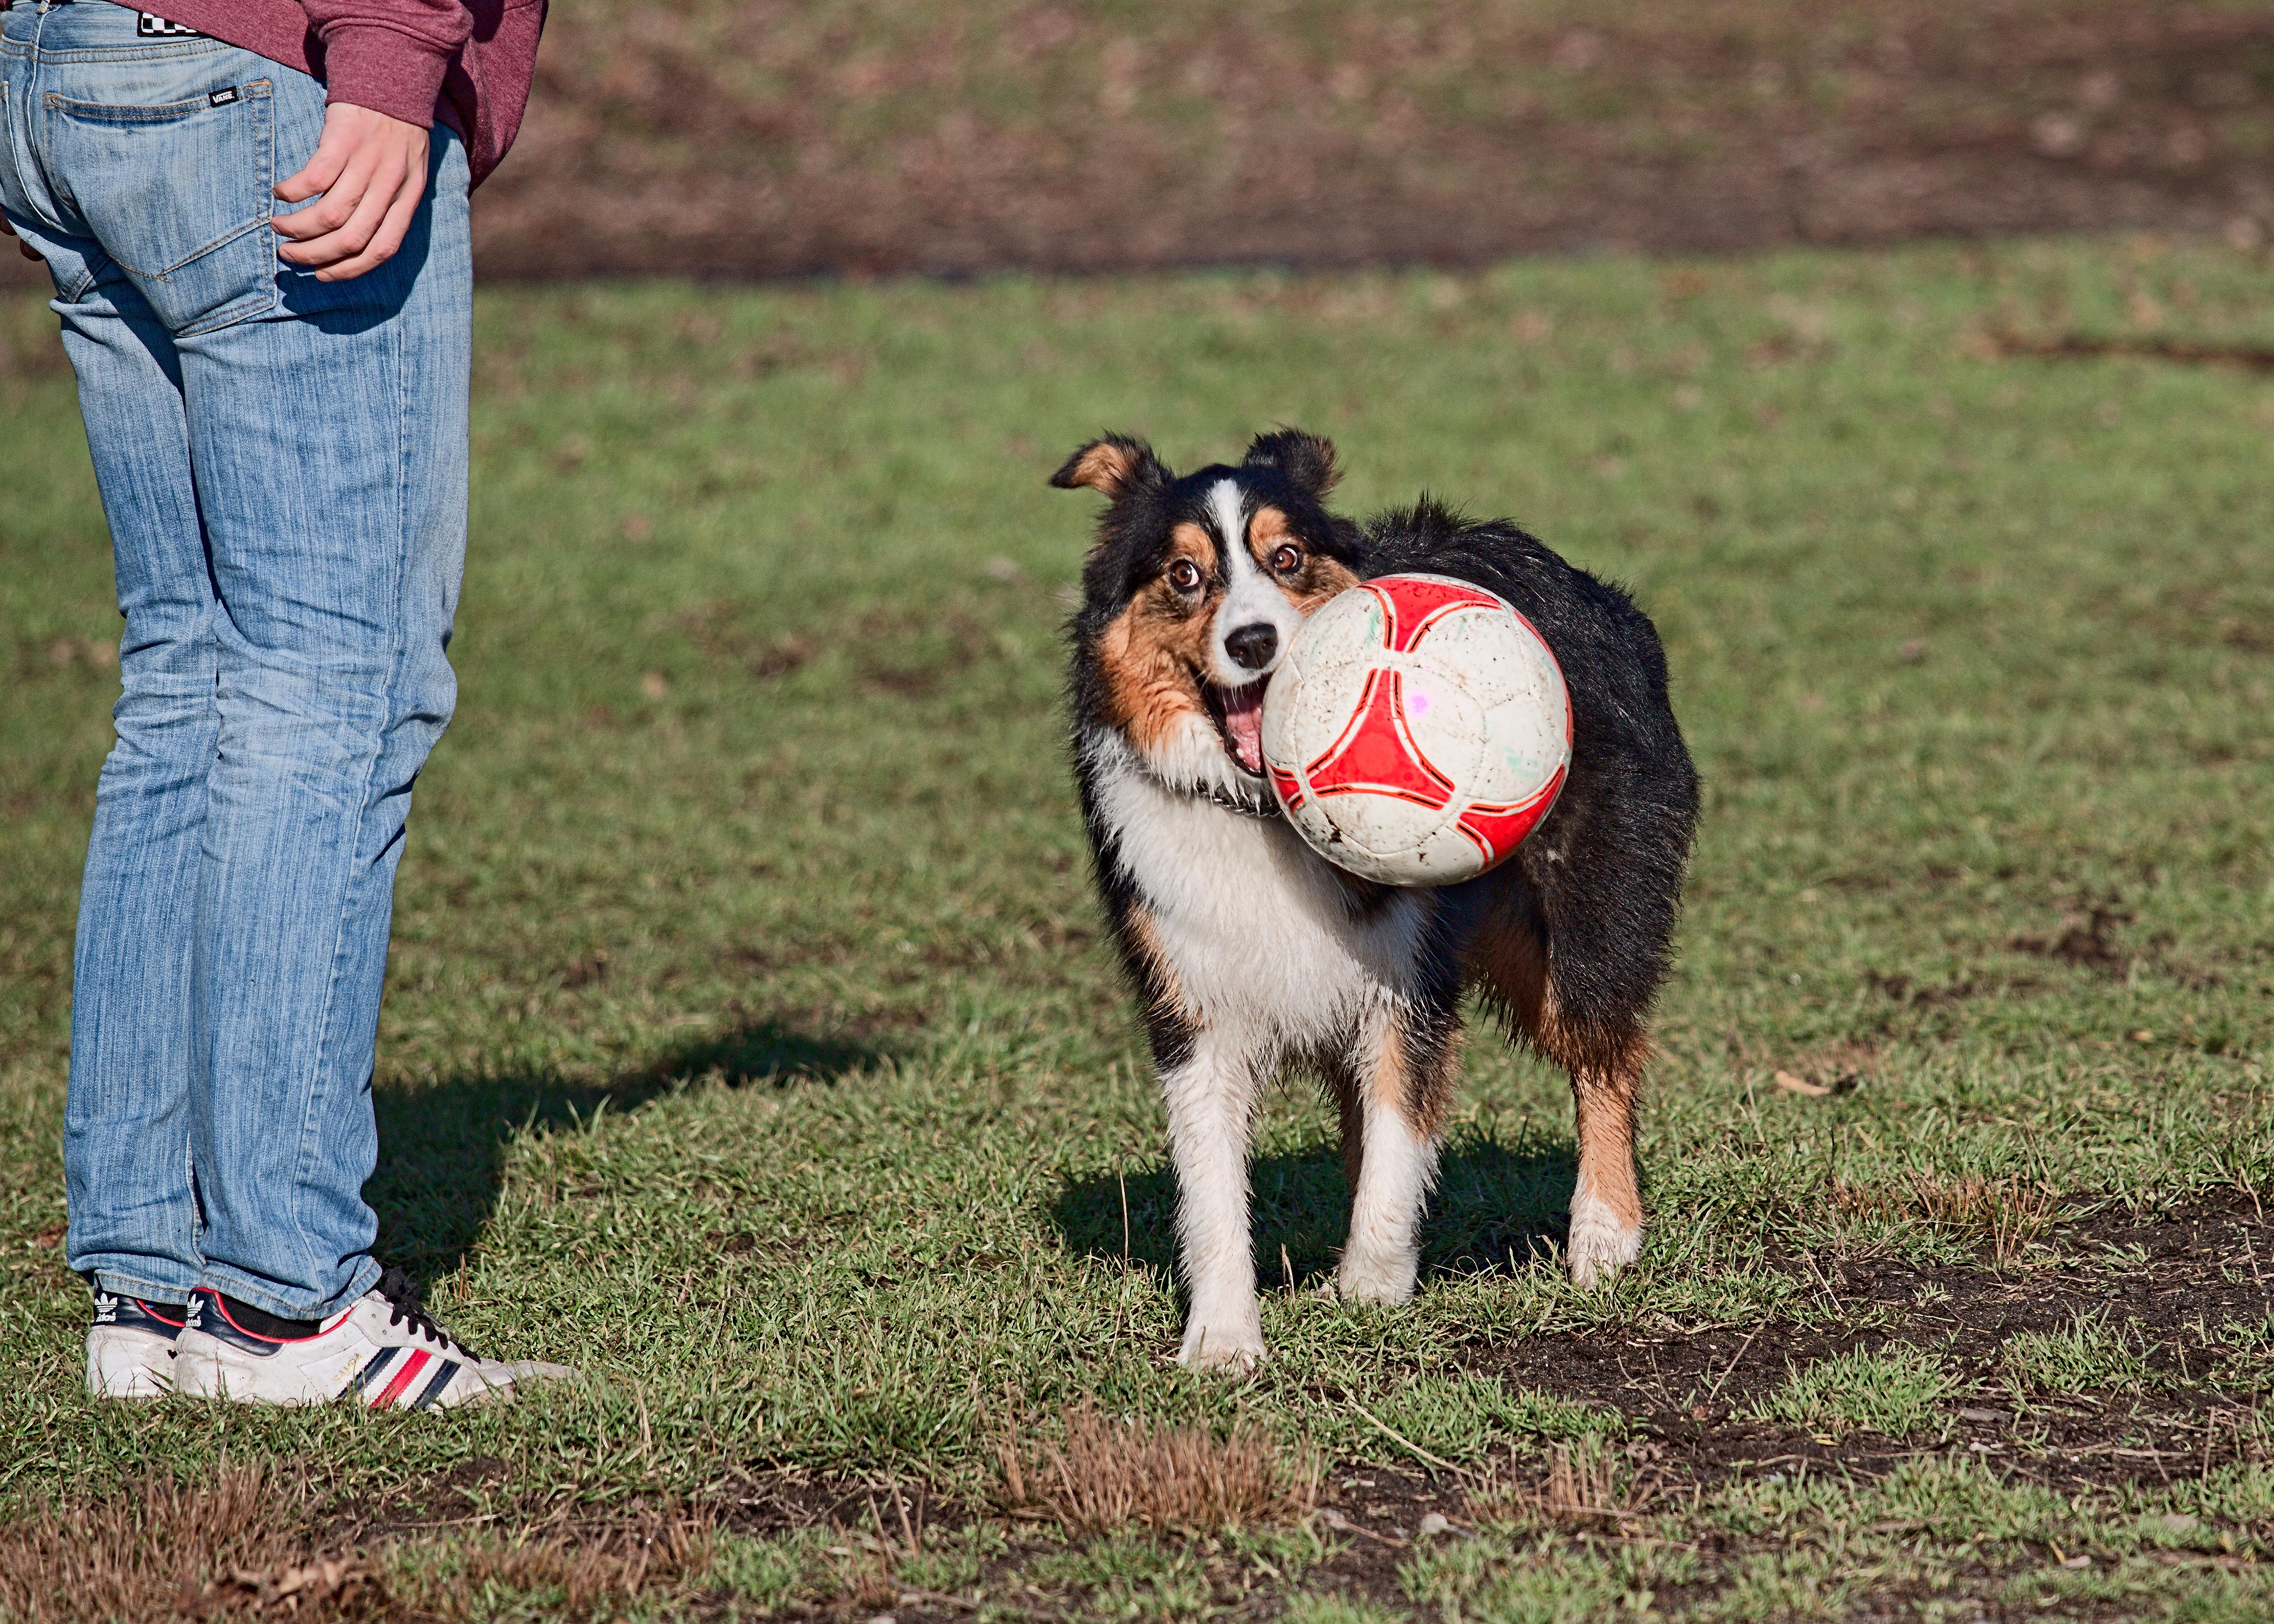 Australian Sheppard carrying soccer ball in his mouth